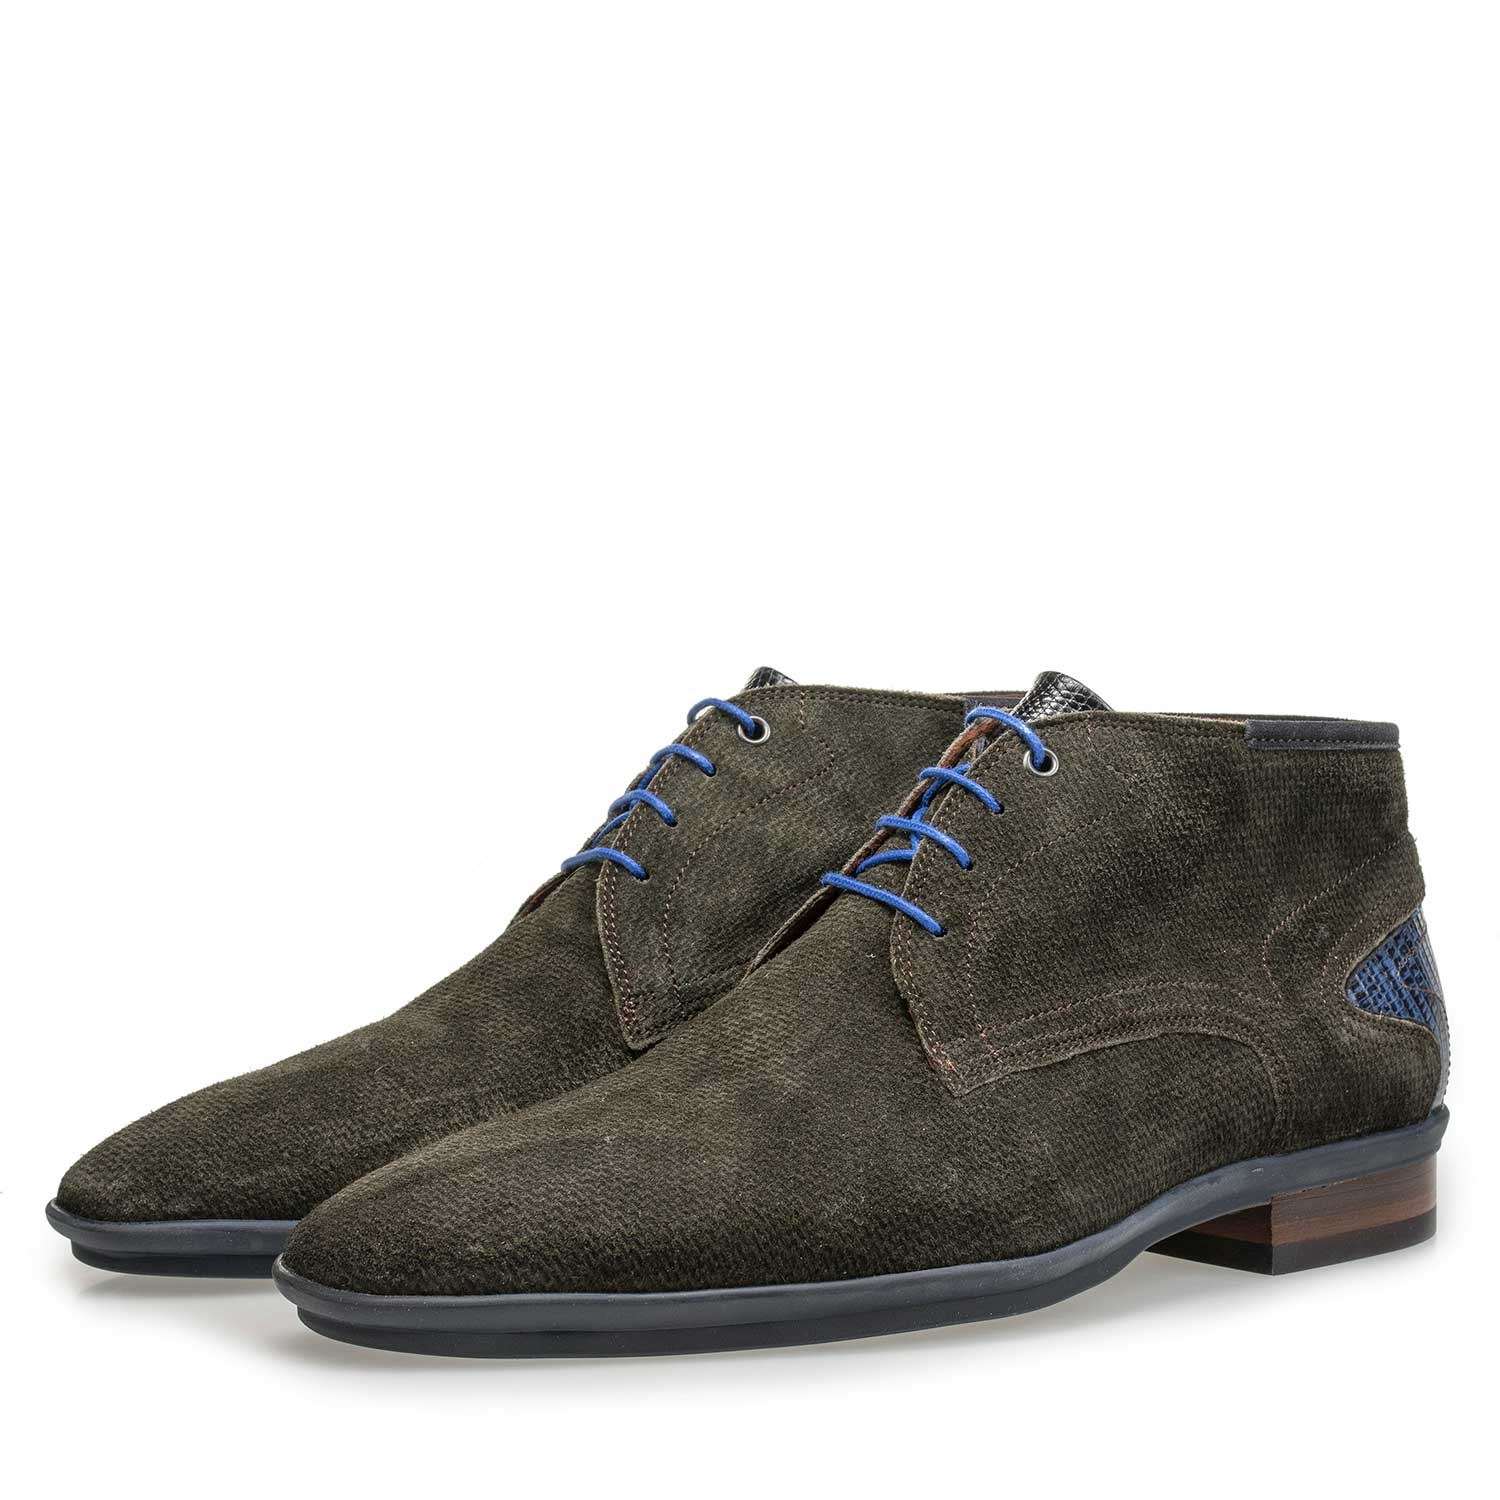 10131/05 - Mid-high green suede leather lace shoe